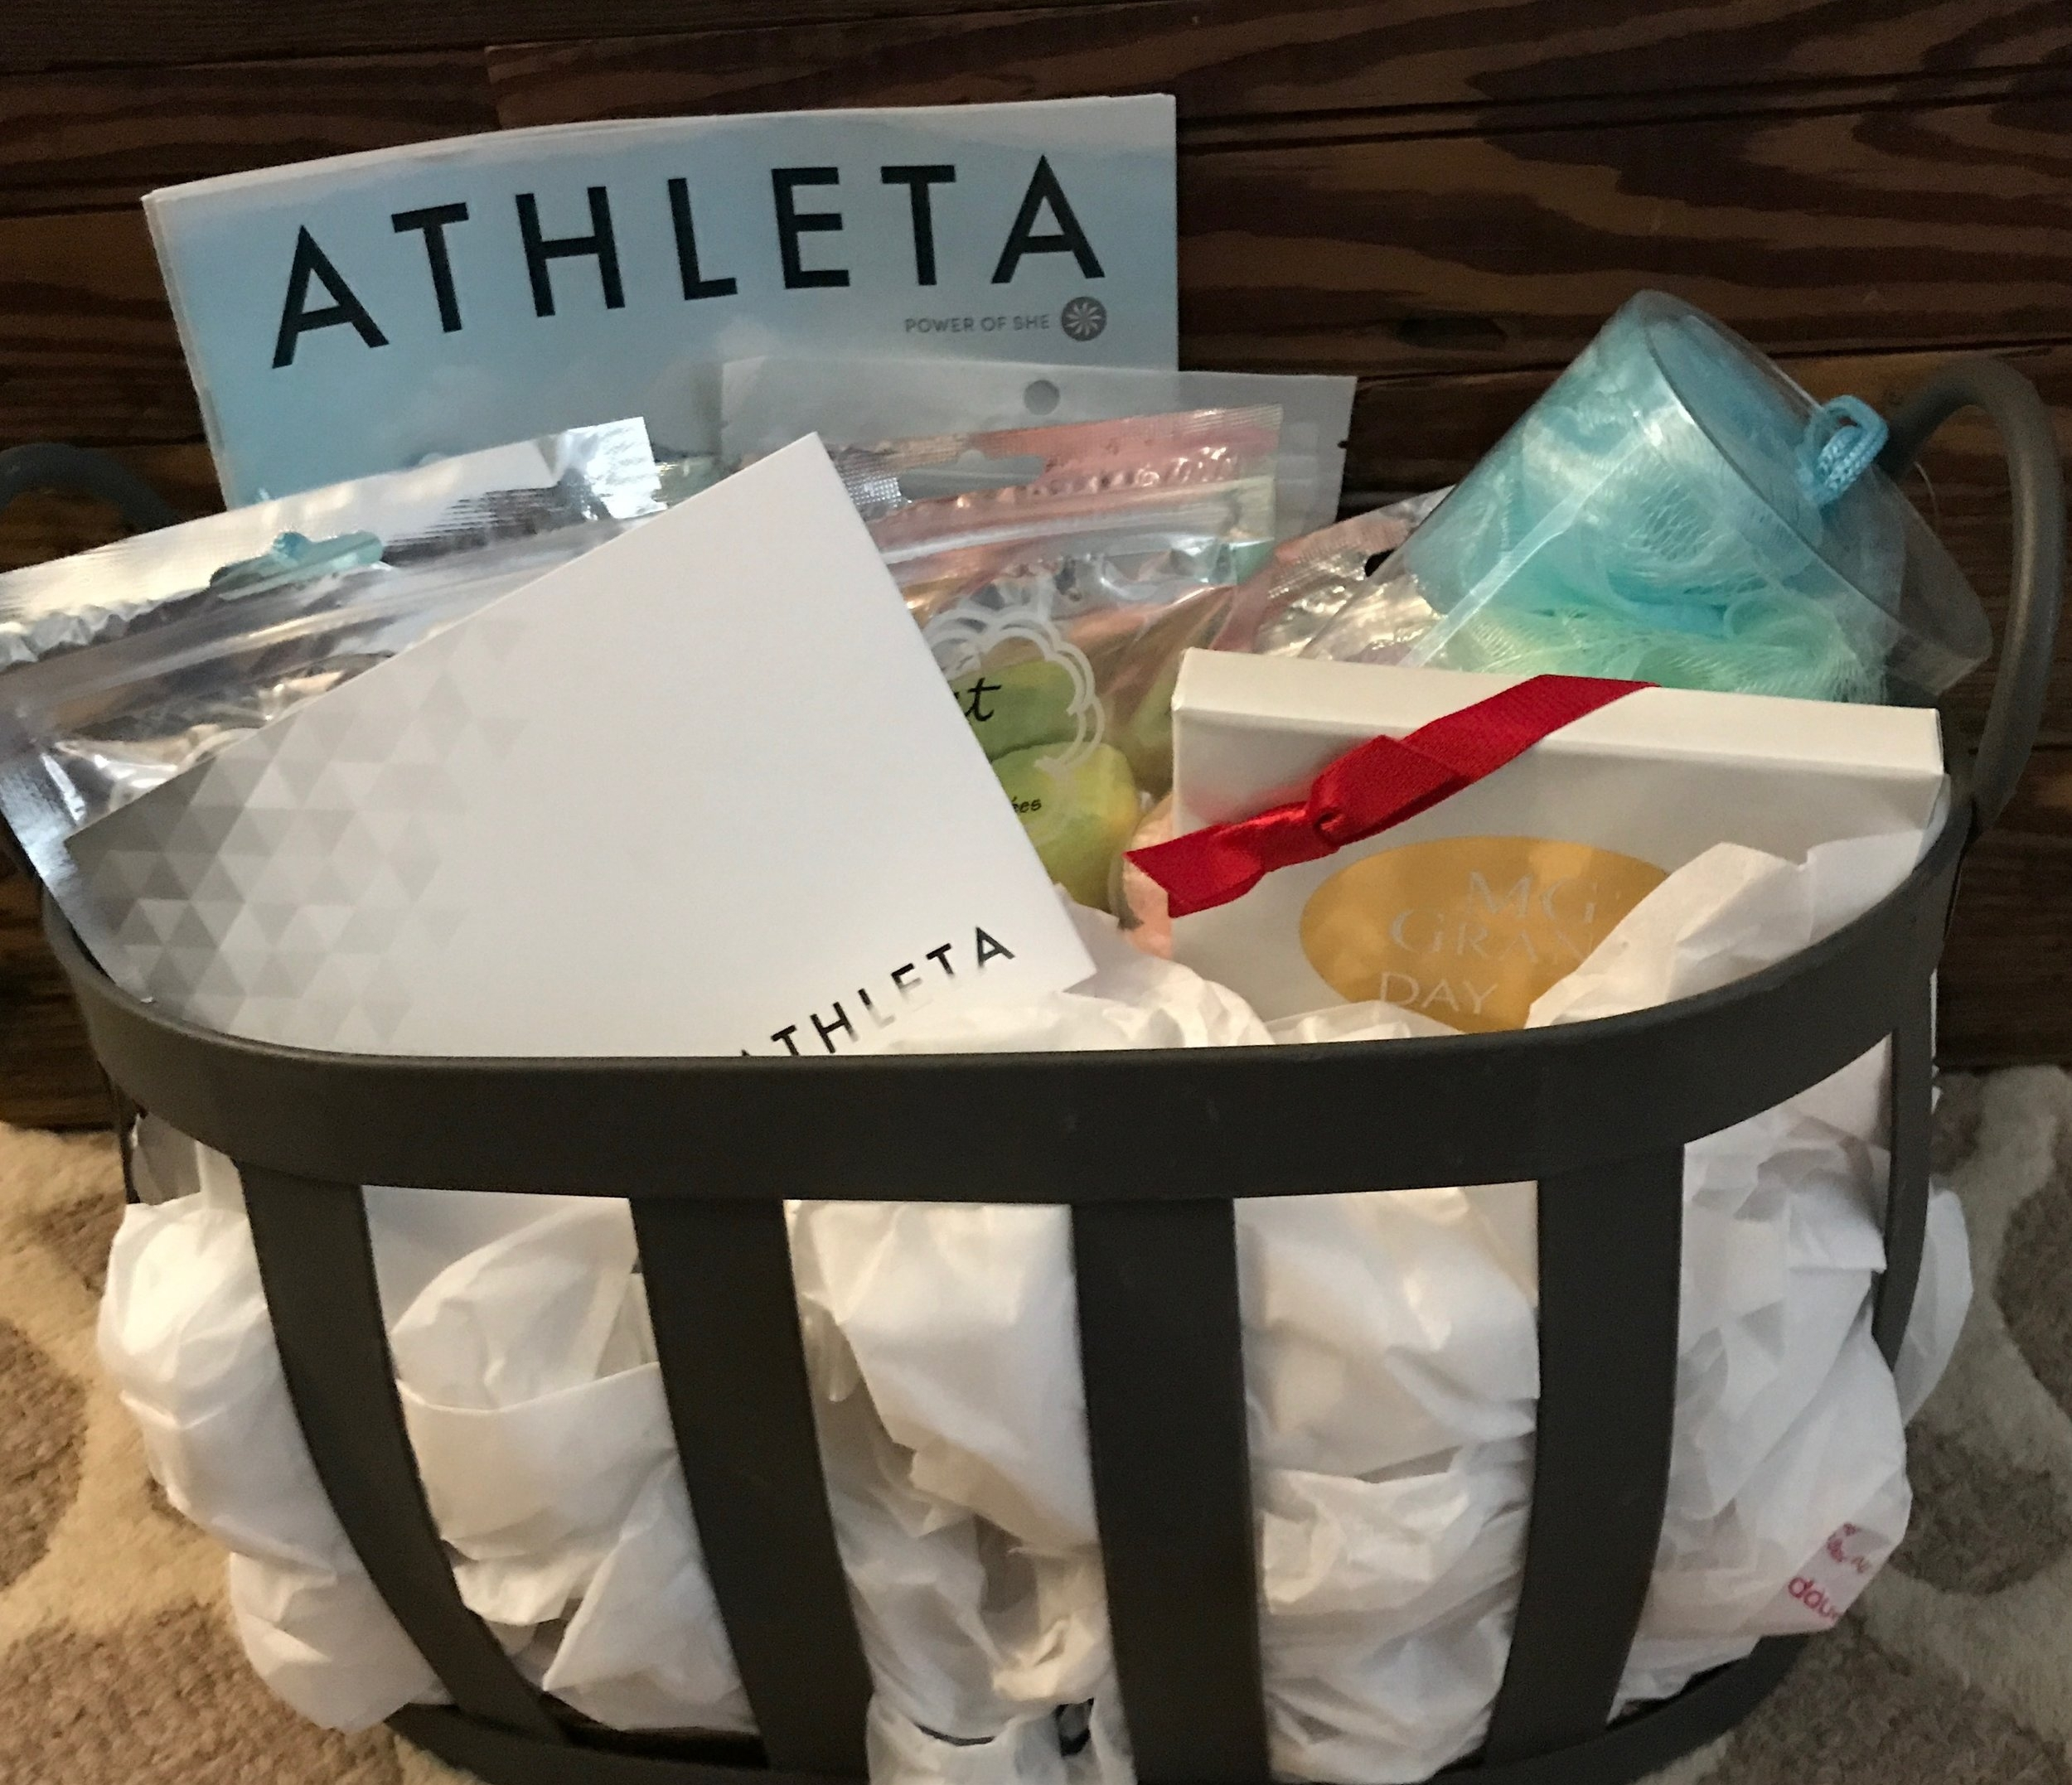 RELAXATION BASKET   Spoil yourself with a little retail therapy followed by a spa day! Included are $50 Athleta gift card, $50 MG GRAND Day Spa Gift card, and a few loofahs and bath bombs.  DONOR: 3rd Grade Classes VALUE: $105